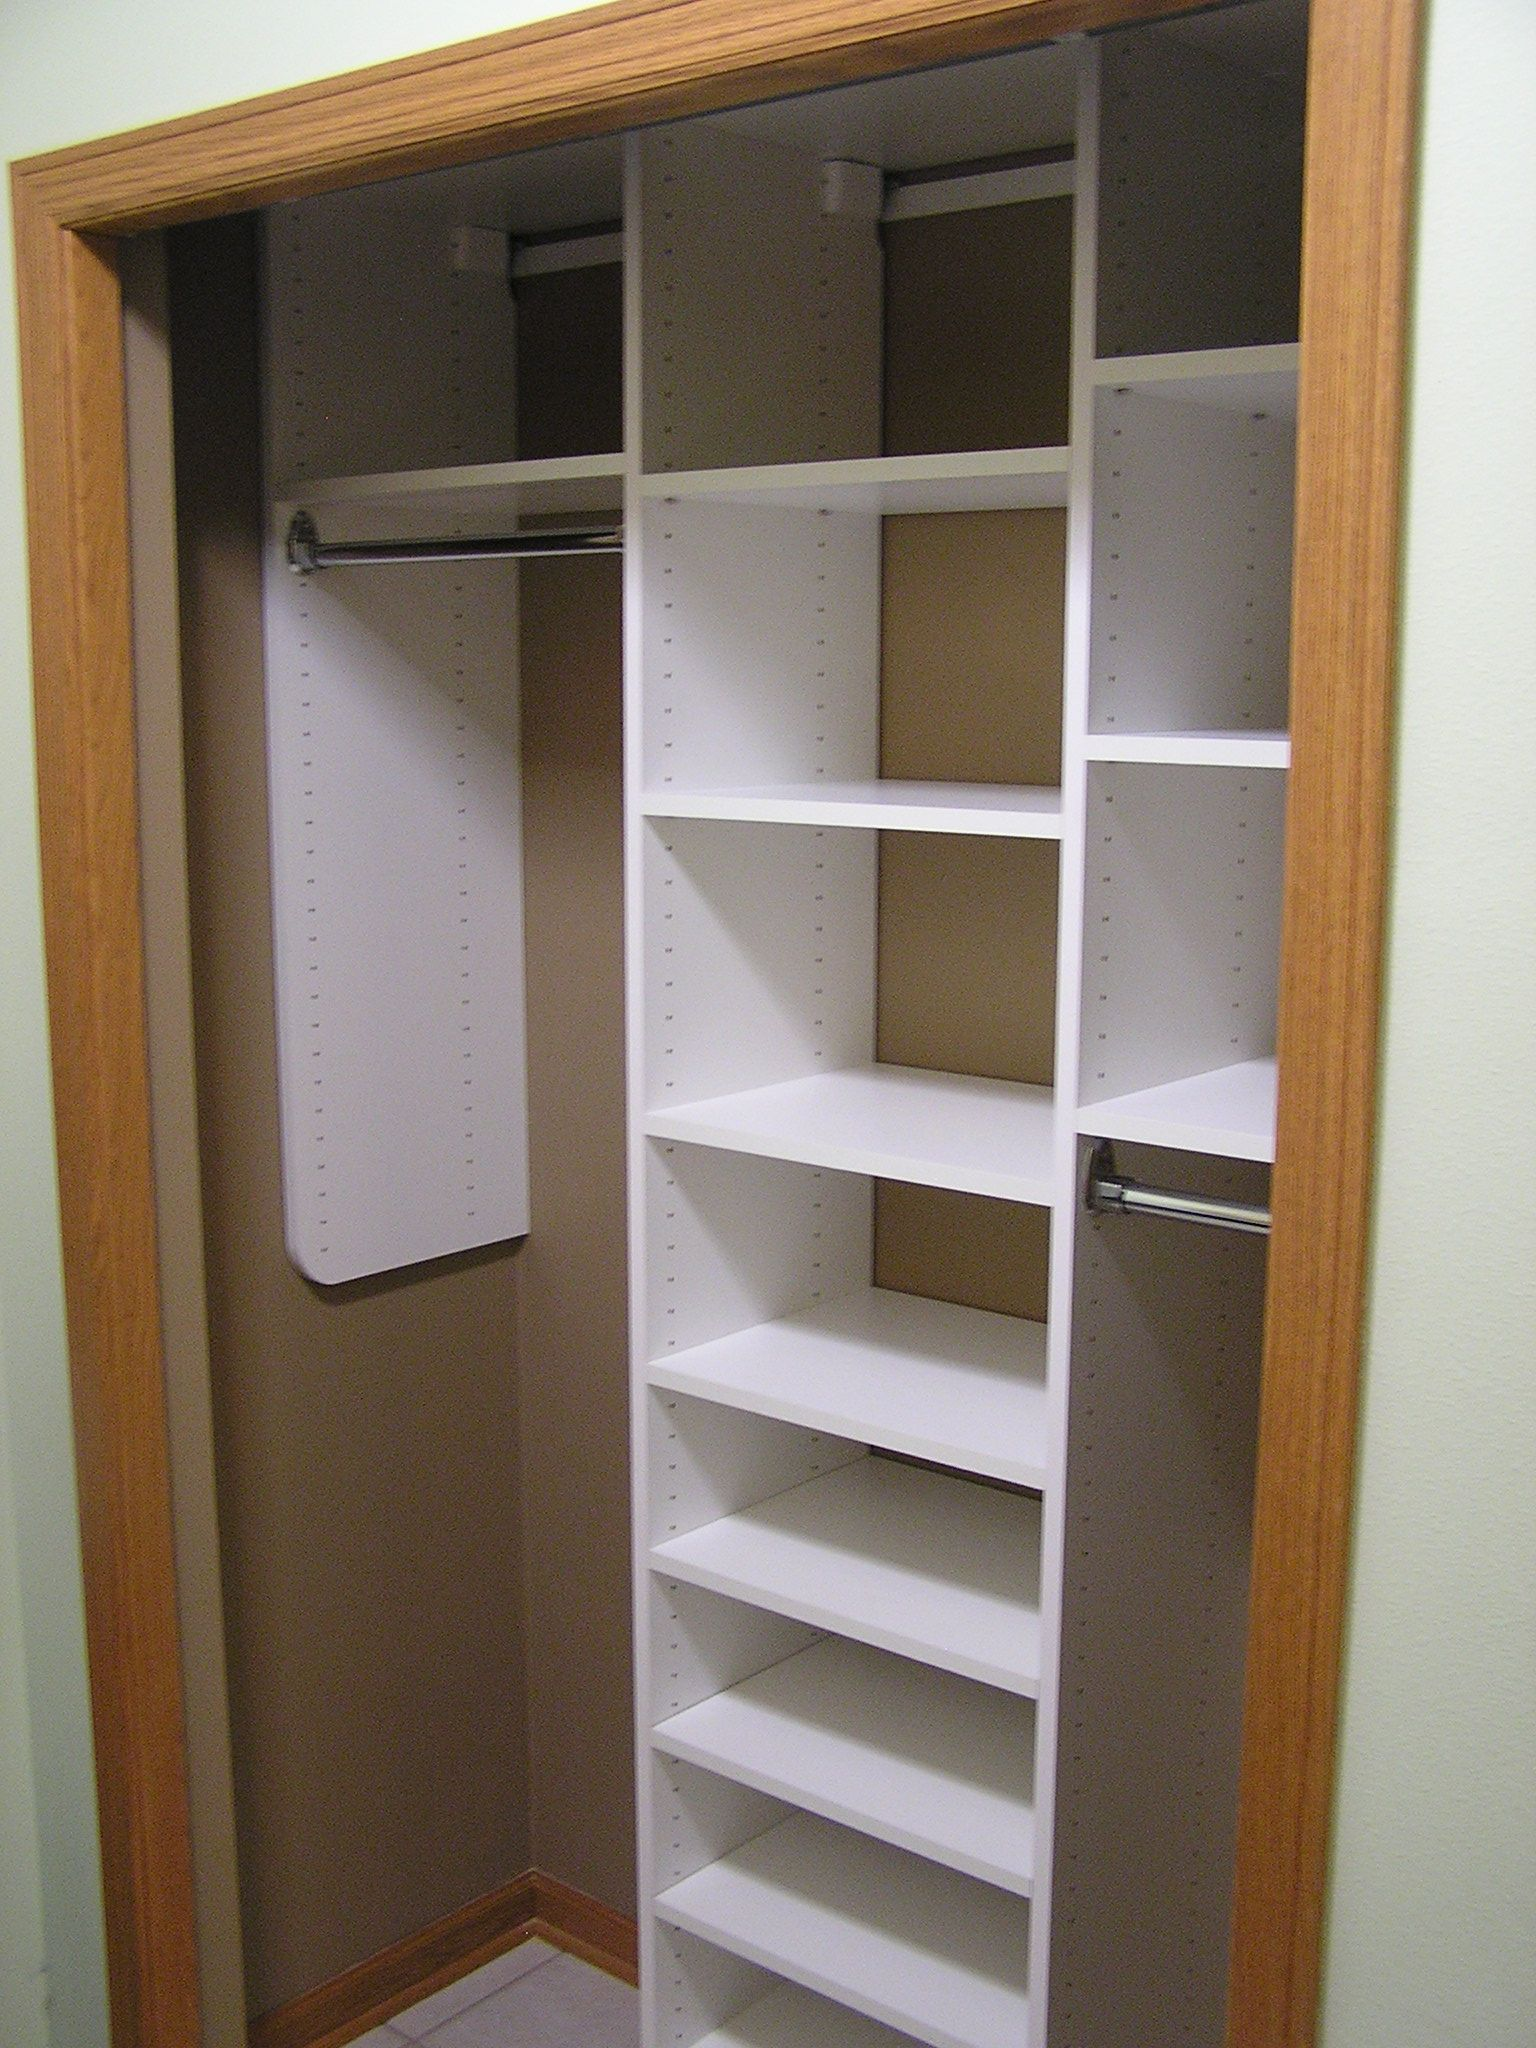 Wall Mounted Closet System. This Is Not That Elaborate, But It Adds More  Storage Space To Your Reach In Closet